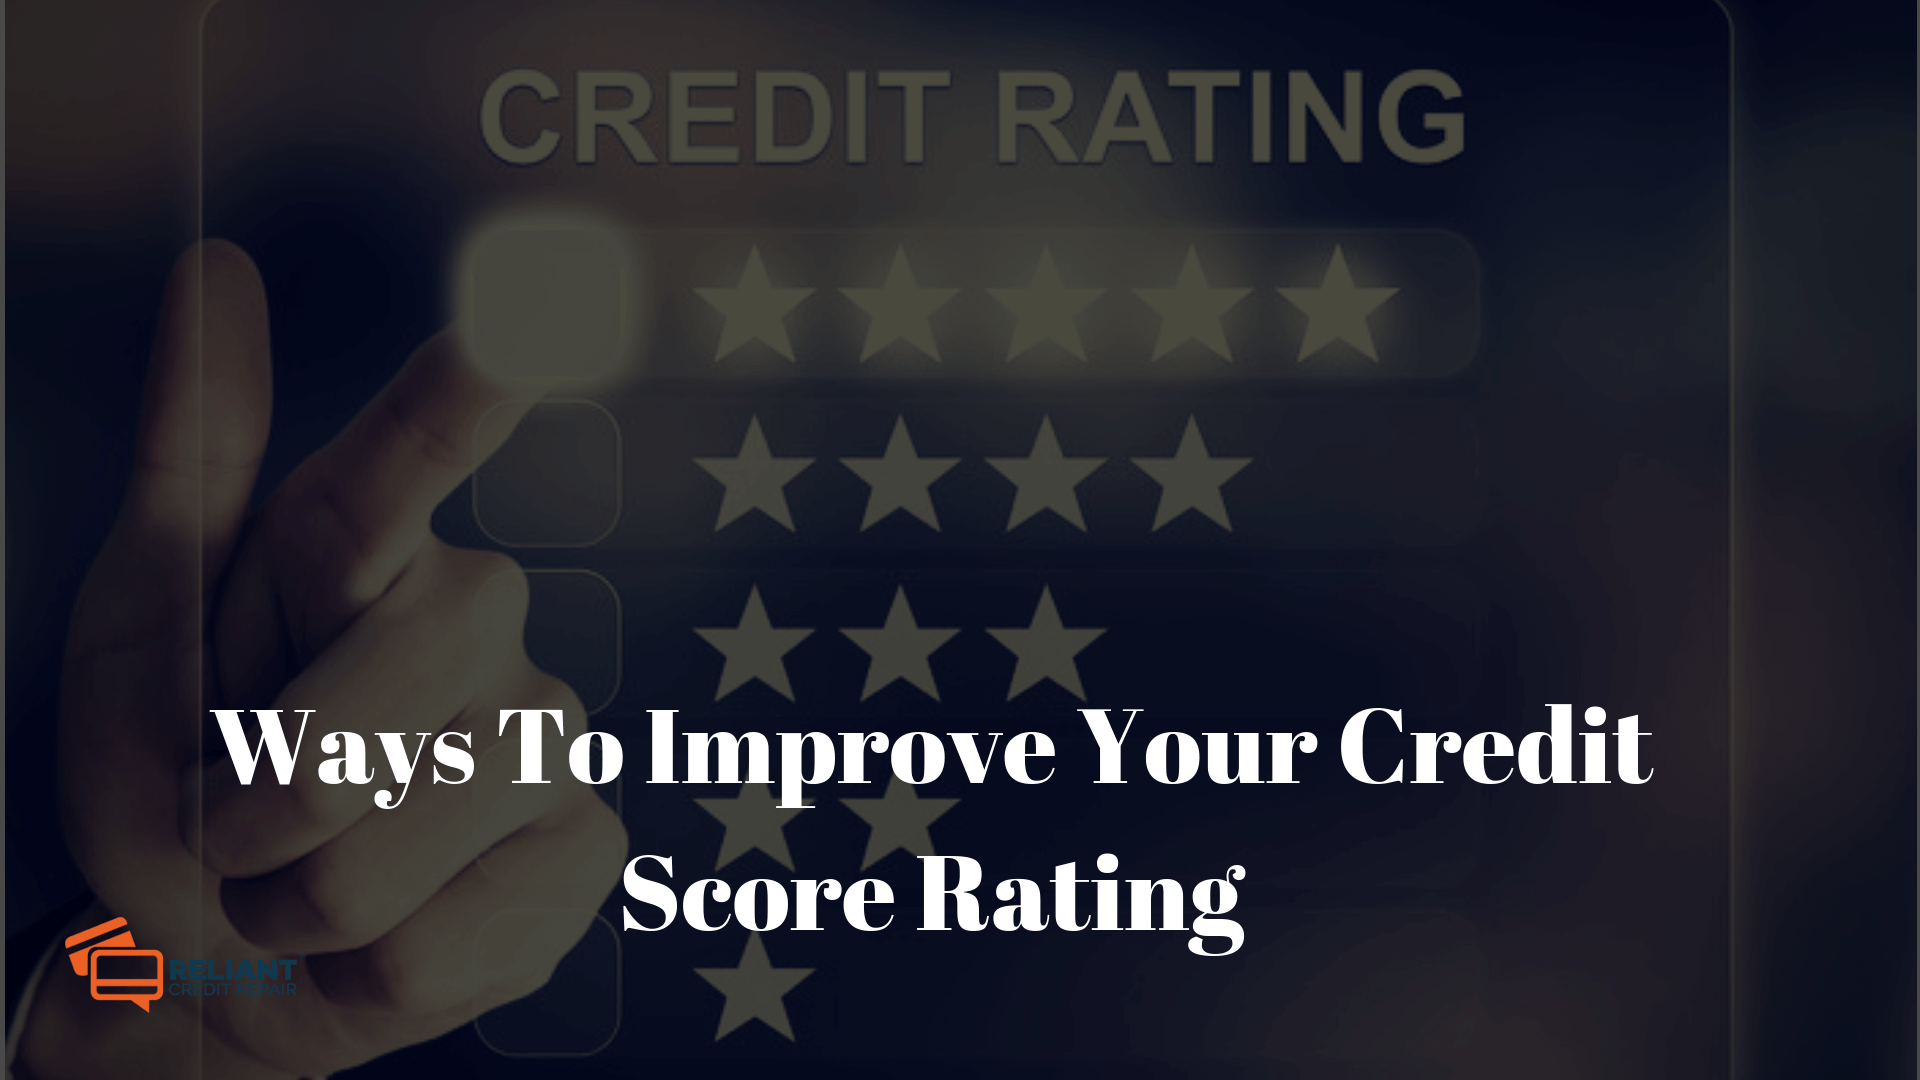 Improve Your Credit Score Rating